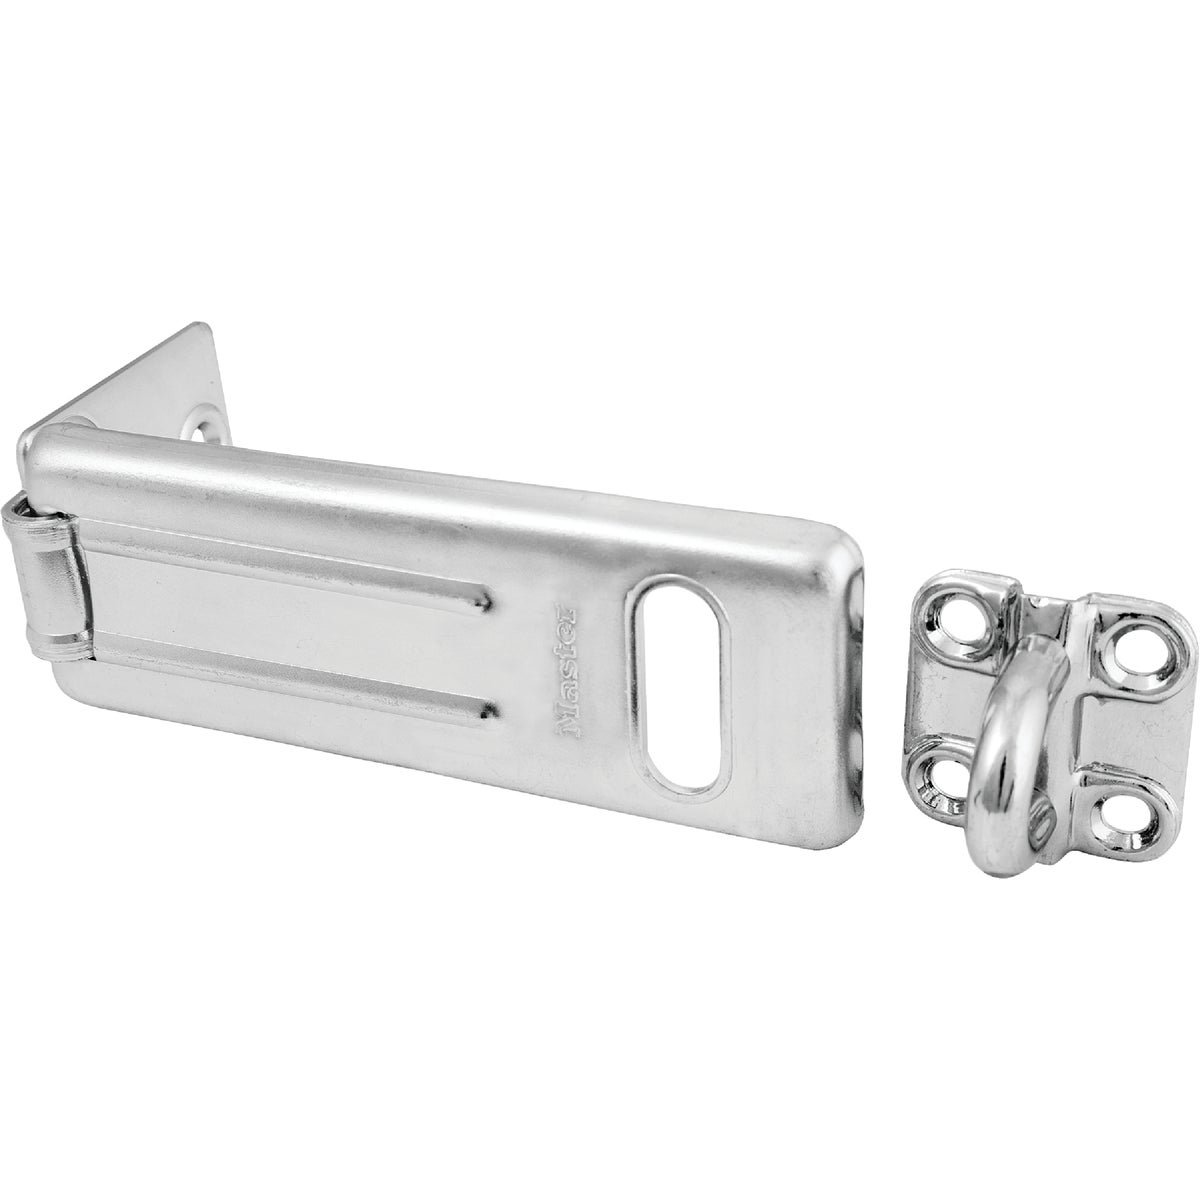 "4-1/2"" SAFETY HASP - 704DPF by Master Lock Company"